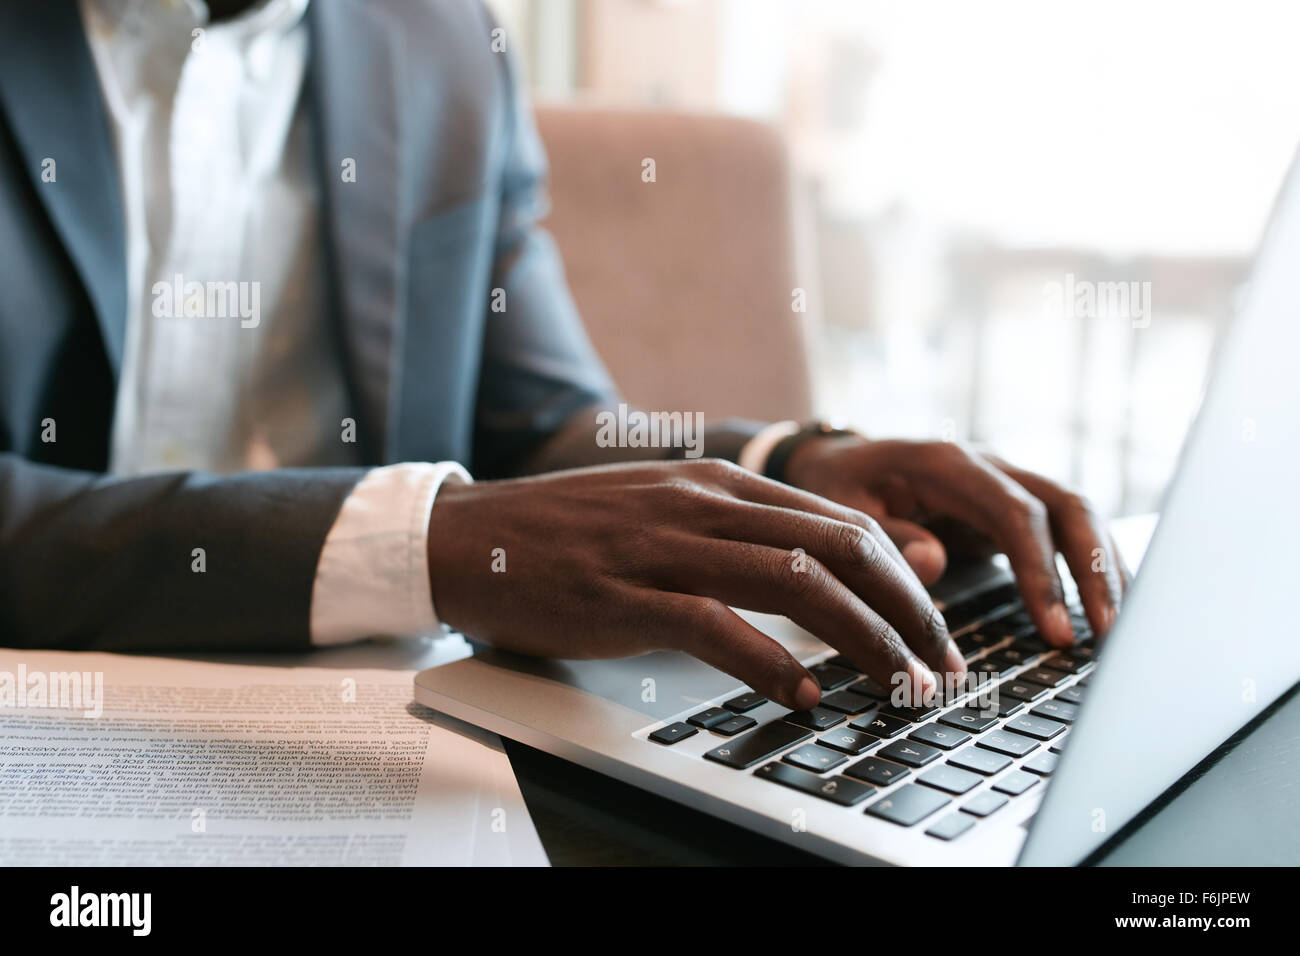 Businessman working on laptop with some documents on table. Close up on male hands typing on laptop keyboard. - Stock Image